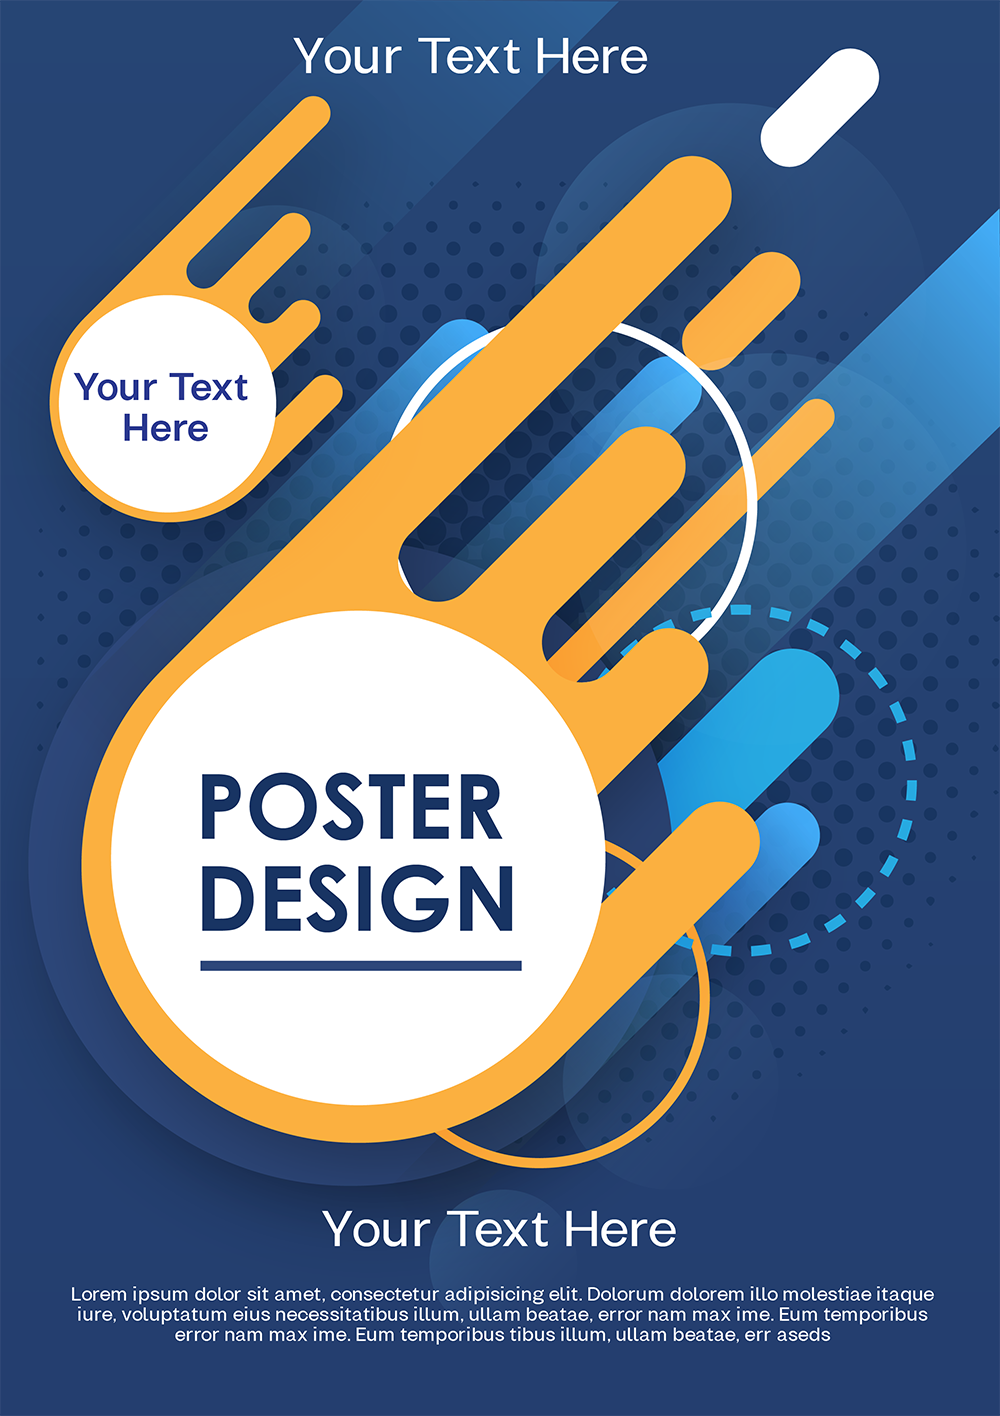 Create A Birth Plan: How To Create A Vector Poster Using Adobe Illustrator